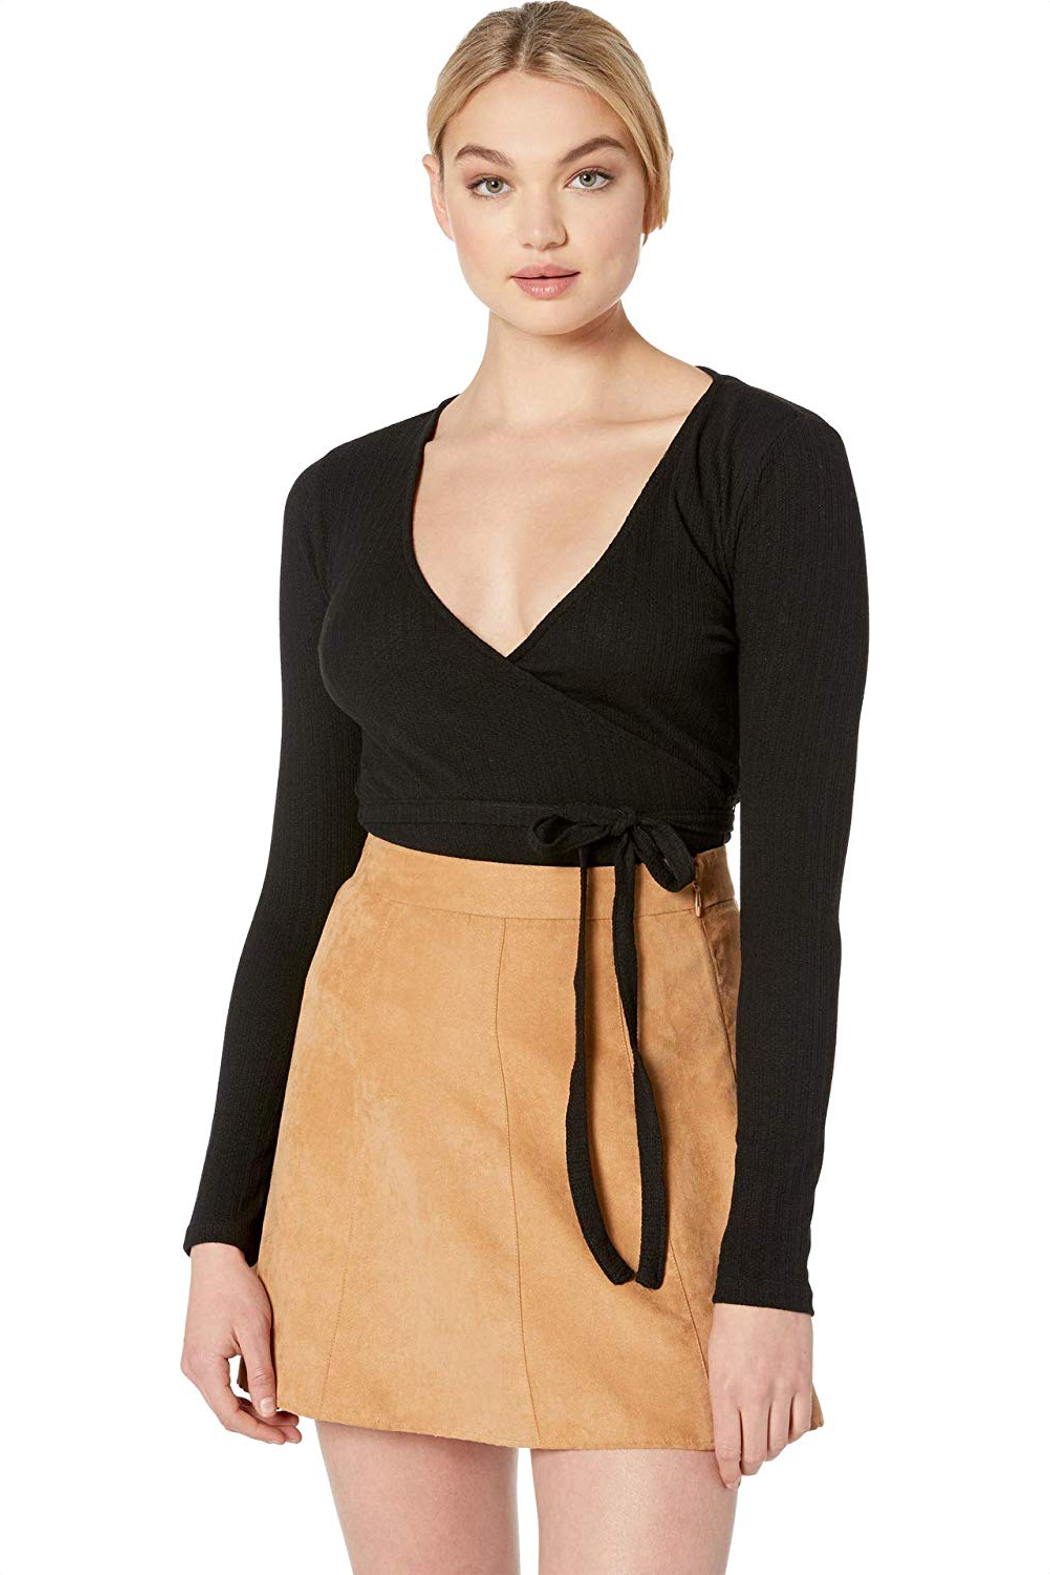 MINKPINK All Wrapped Up Surplice Top - Main Image